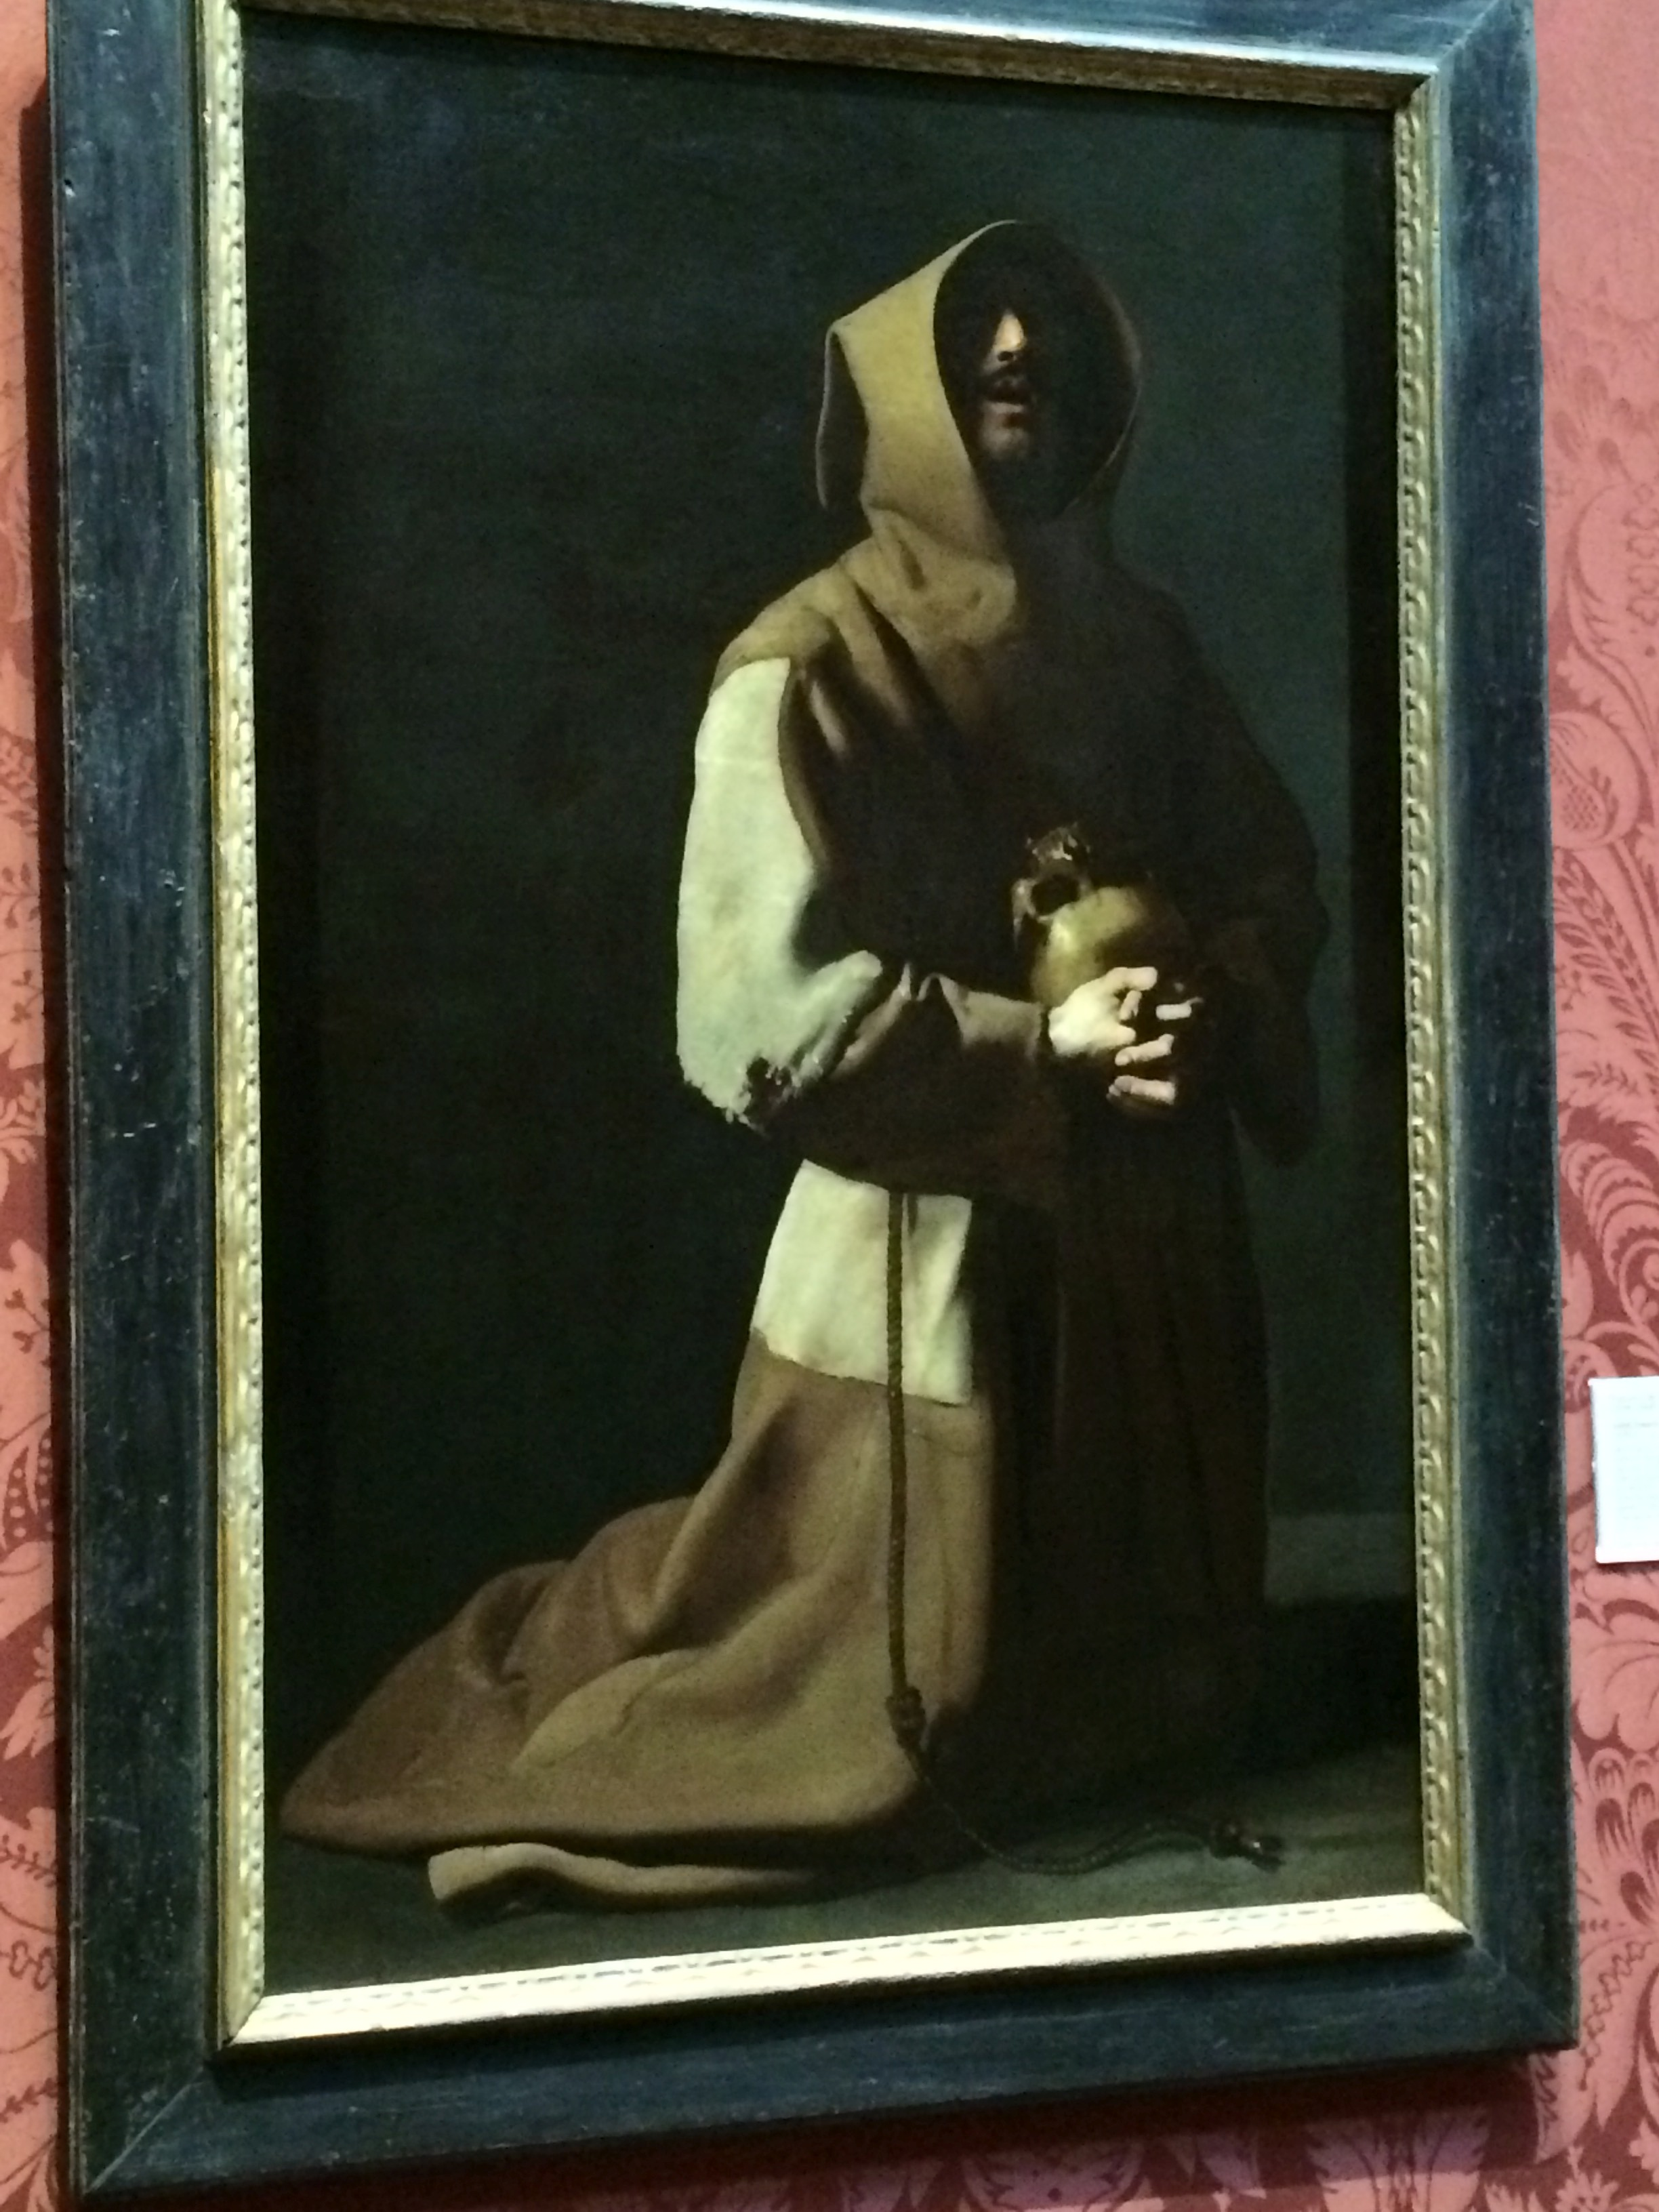 A favorite painter - Zurbran's St. Francis